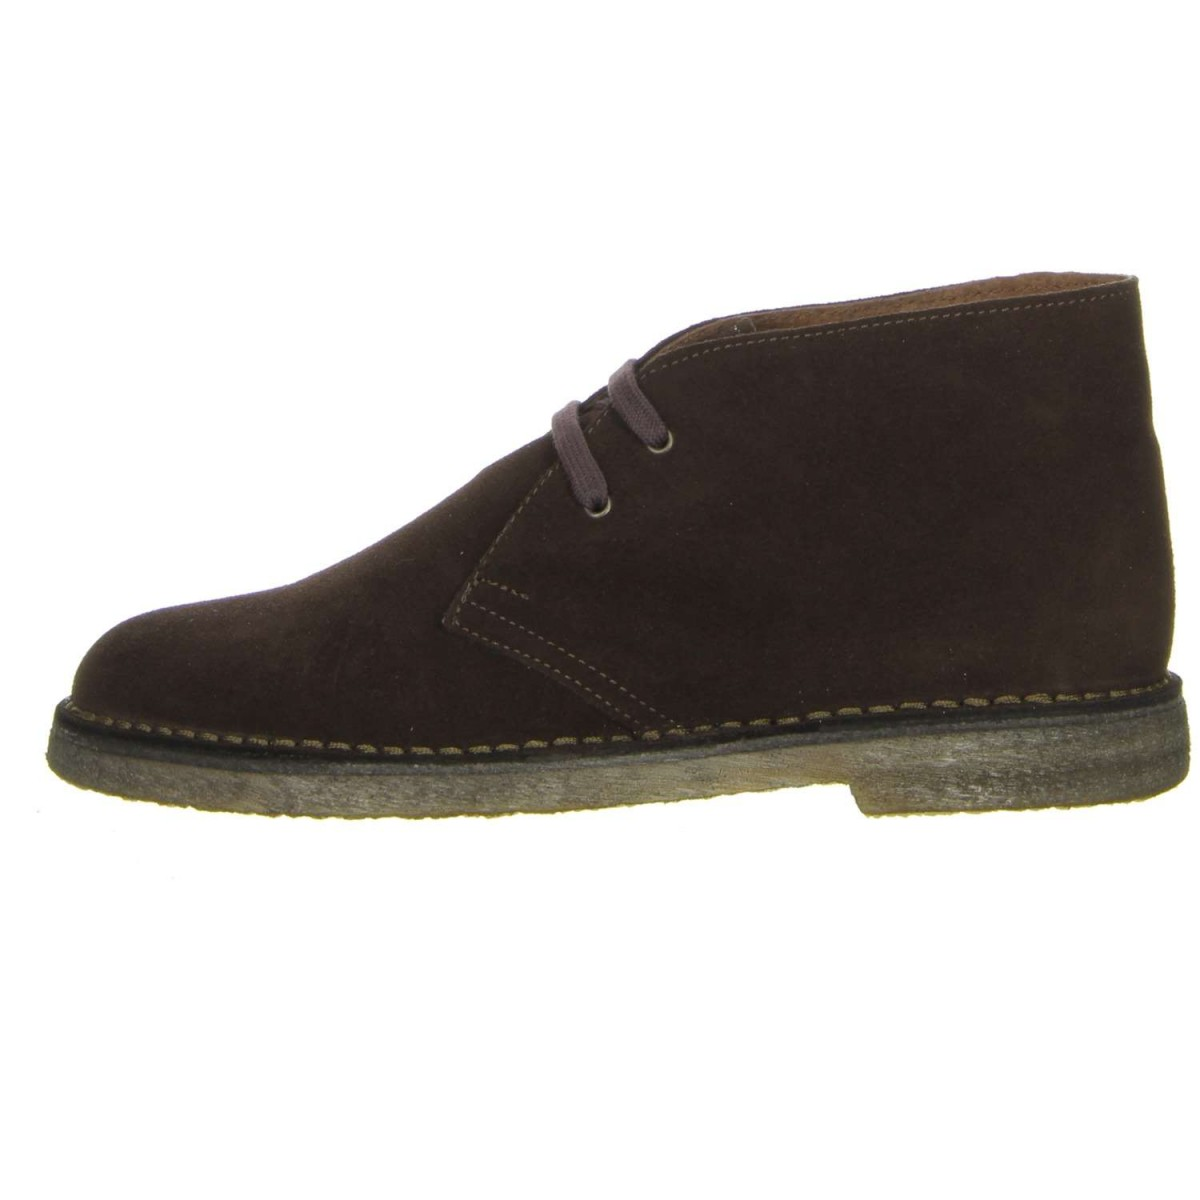 petros comfort damen herren desert boots braun herrenschuhe desert boot. Black Bedroom Furniture Sets. Home Design Ideas